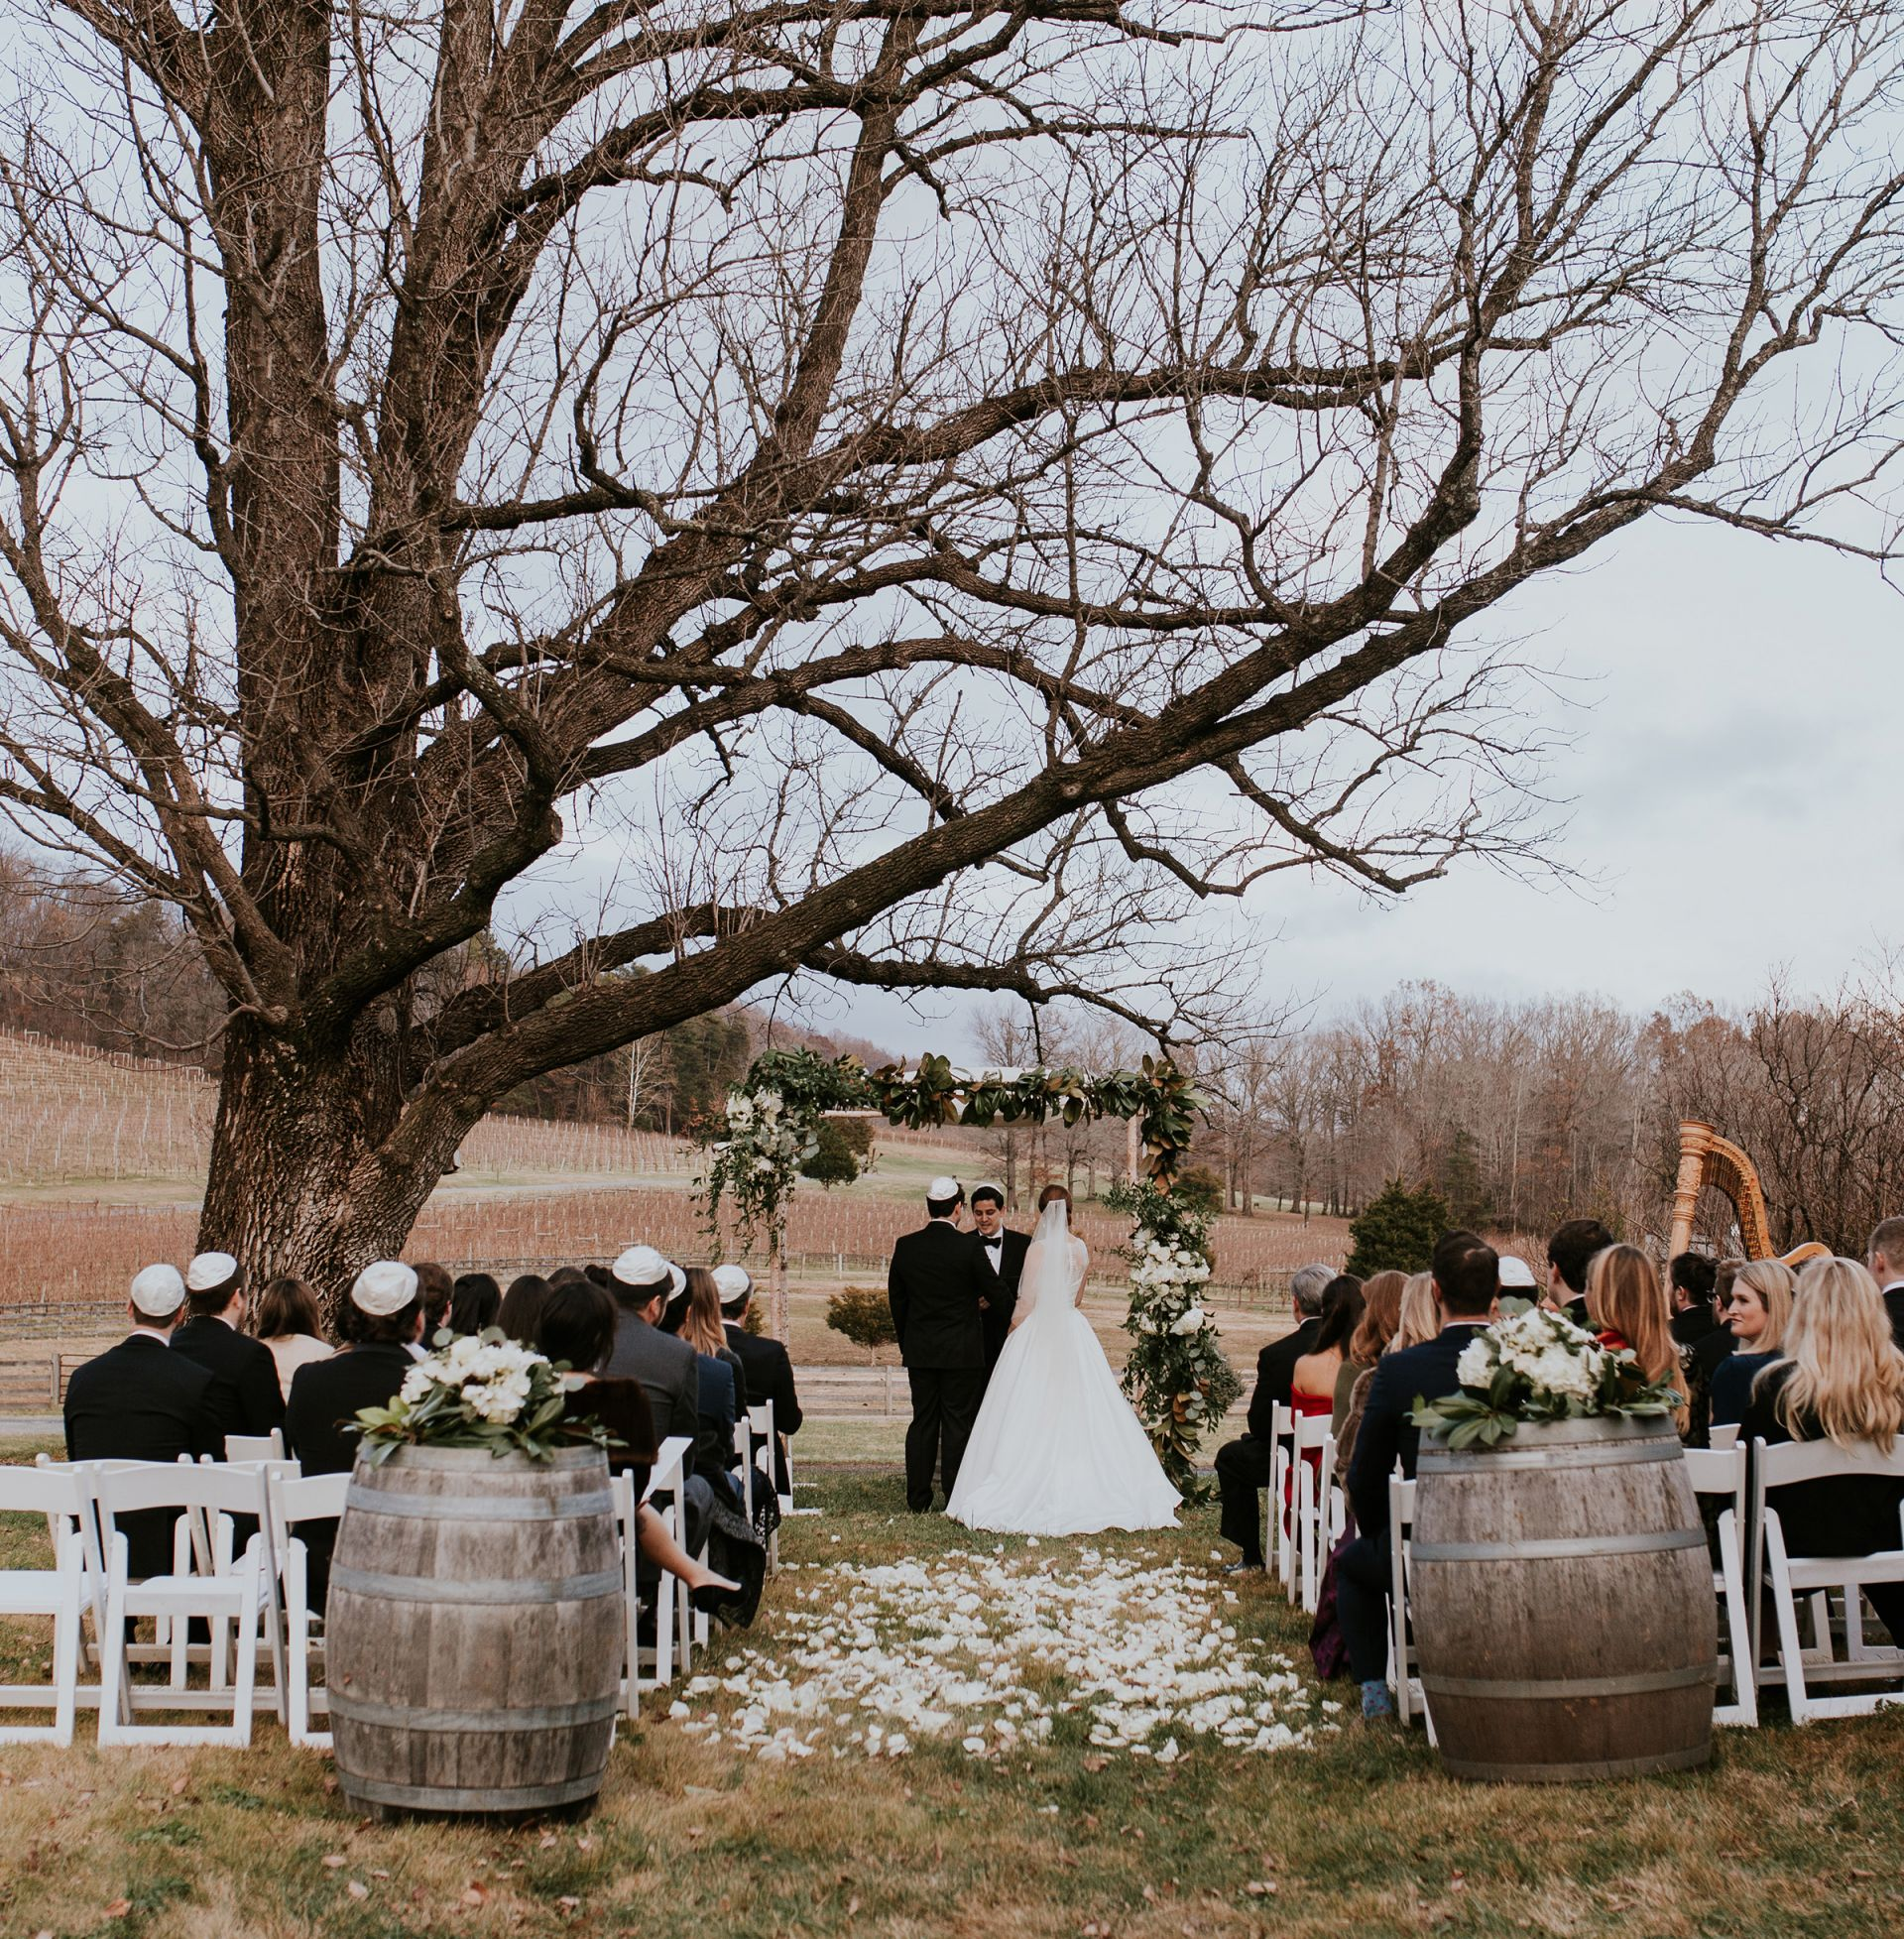 What Is It Like To Have A Small Winter Wedding In December